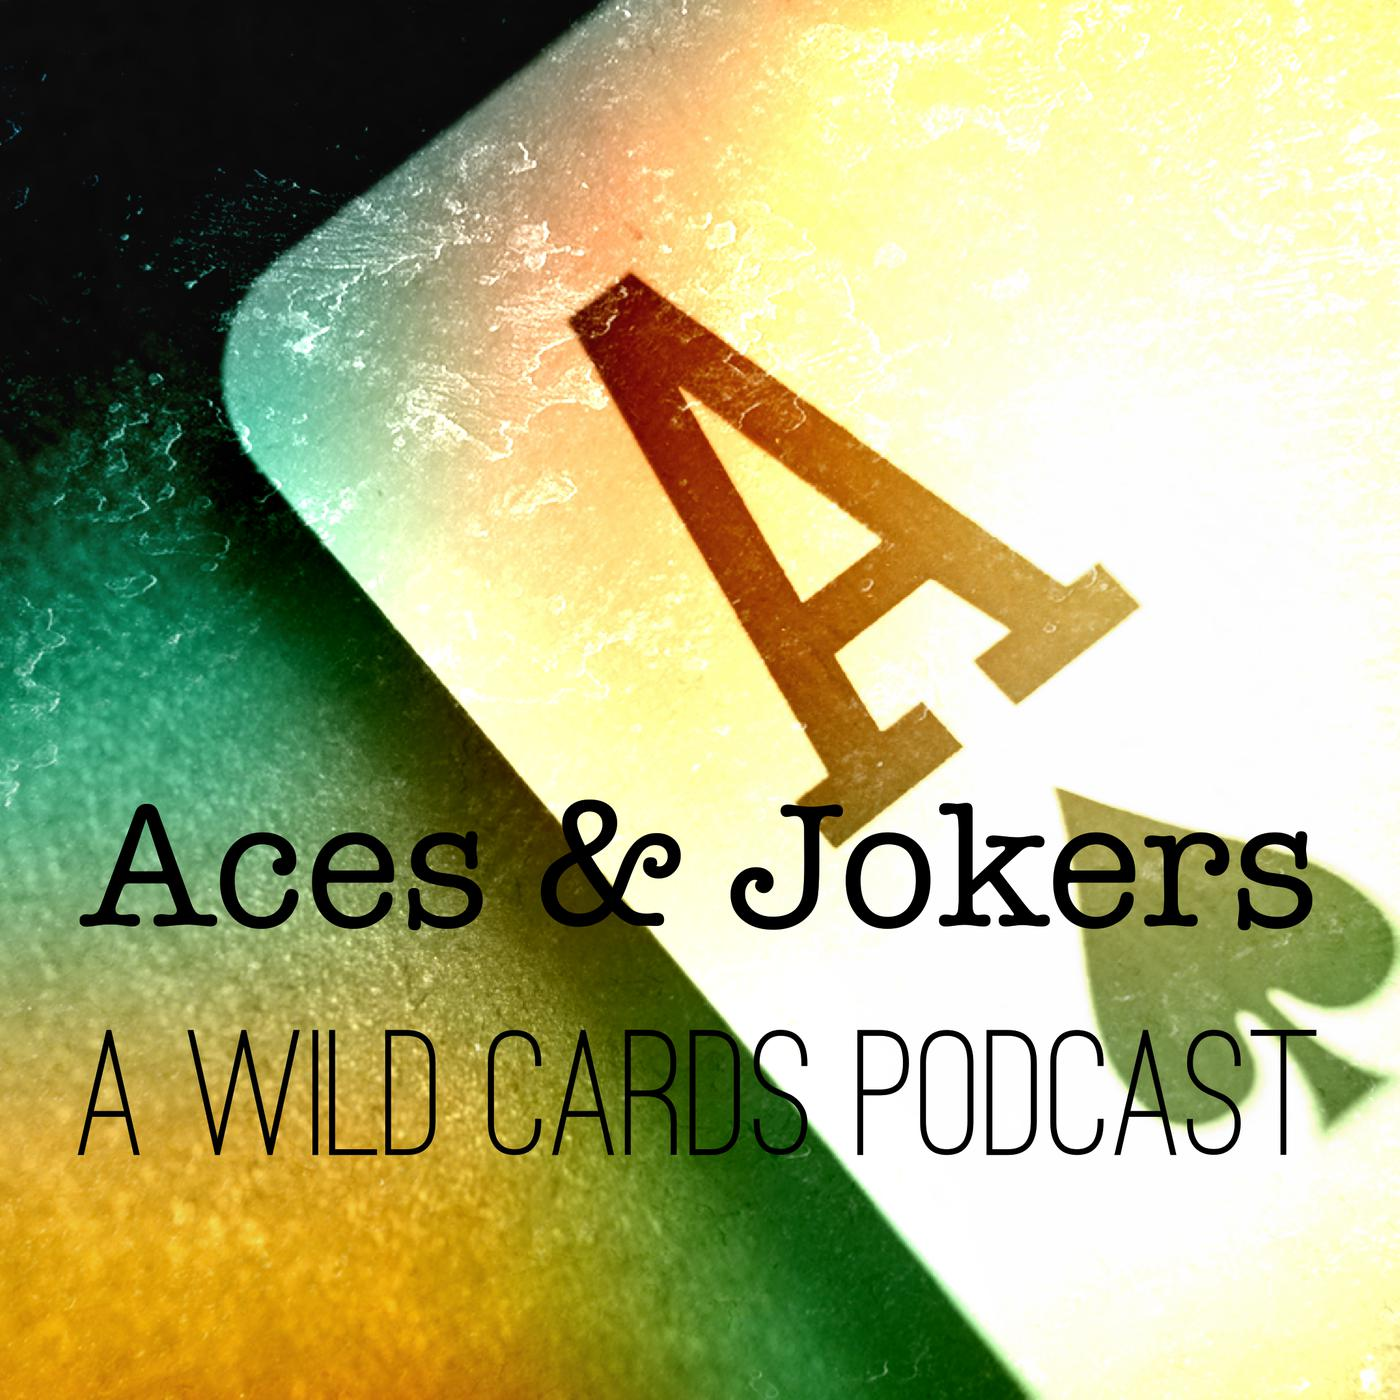 Ace in the Hole, Part 2: Elections and Erections - Aces & Jokers: A